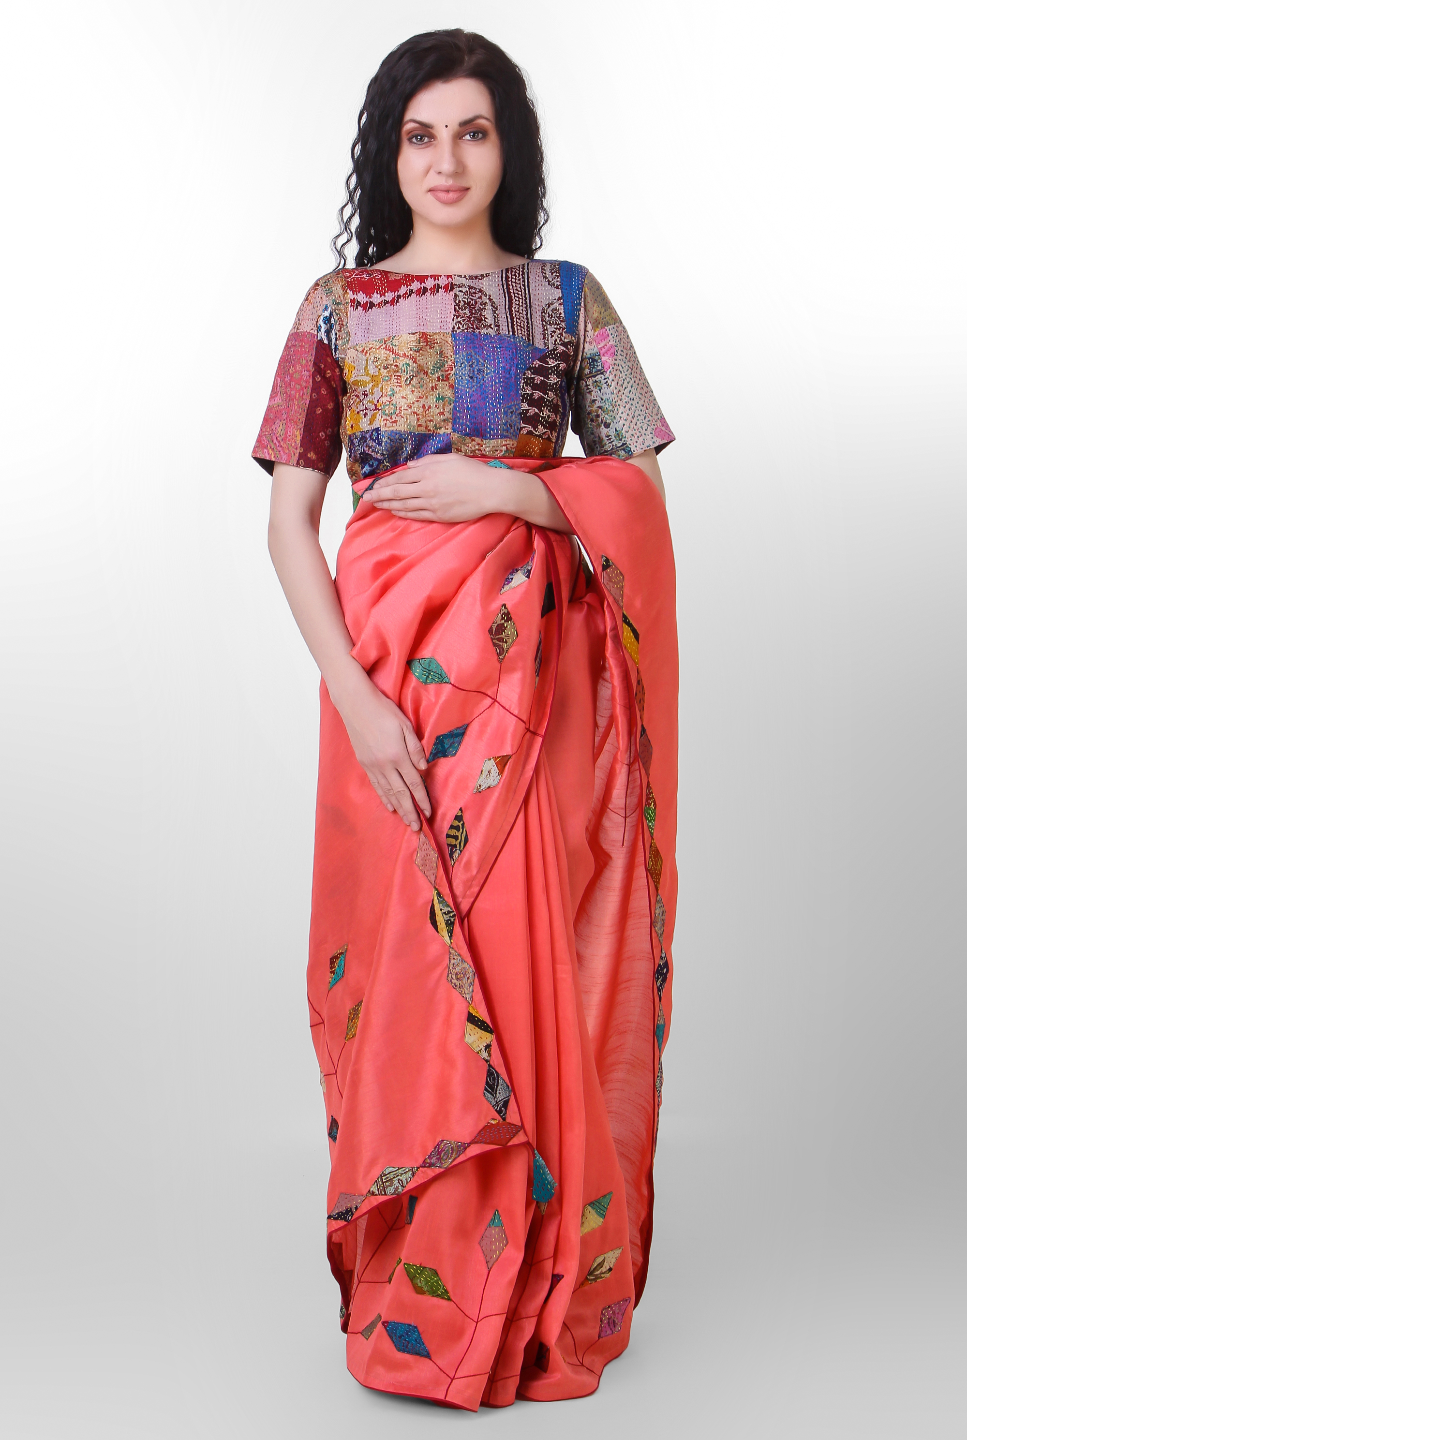 Peach Dupion Silk Kantha Applique Saree